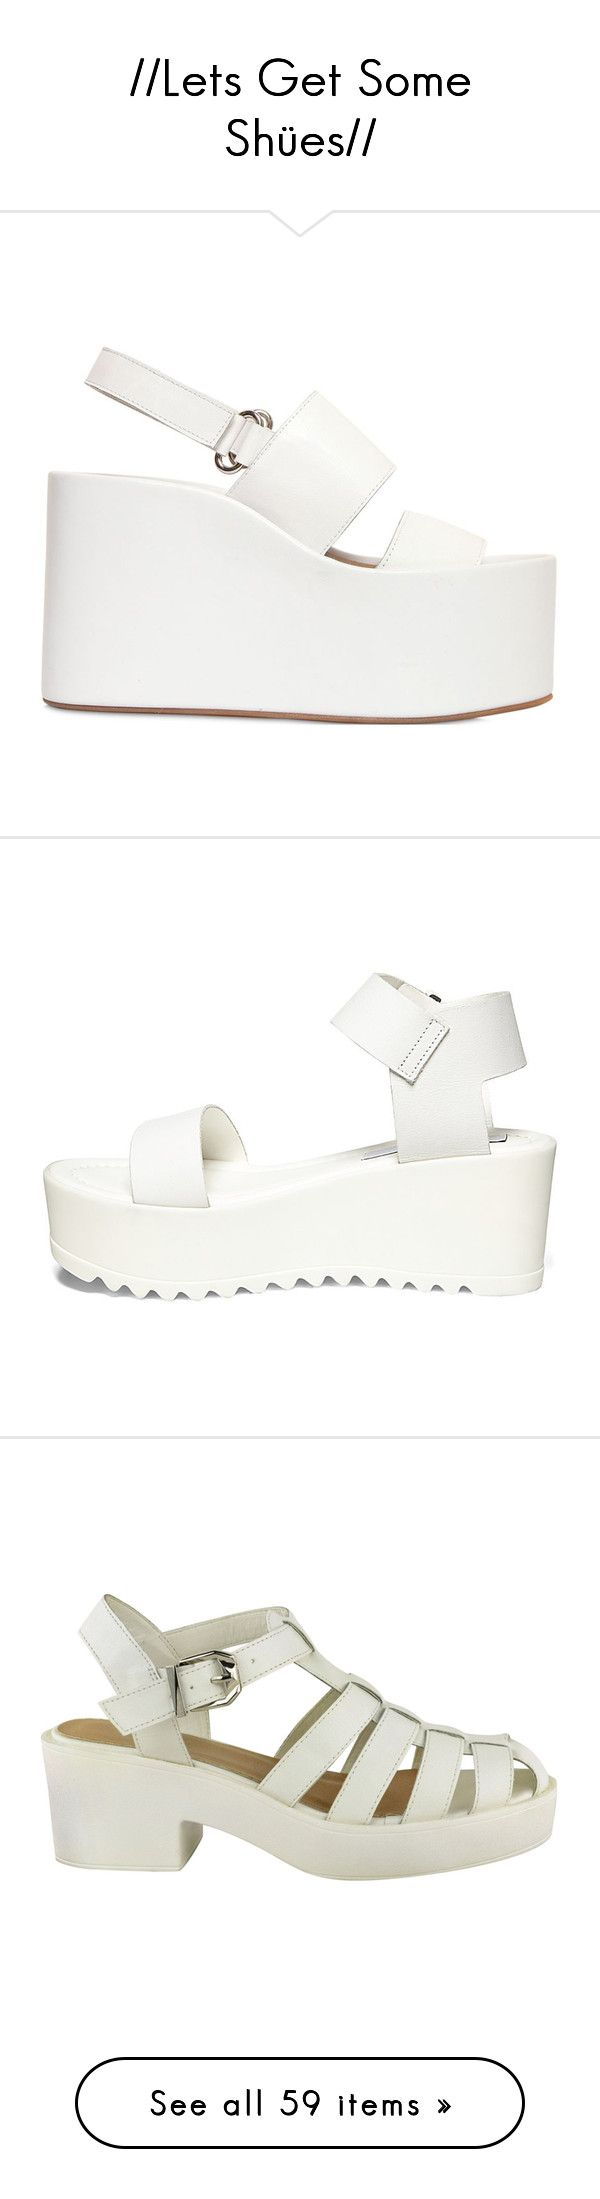 """//Lets Get Some Shües//"" by wallfl0wers ❤ liked on Polyvore featuring shoes, blackandwhite, sandals, white, white wedge shoes, leather sandals, white platform shoes, wedges shoes, wedge sandals and heels"